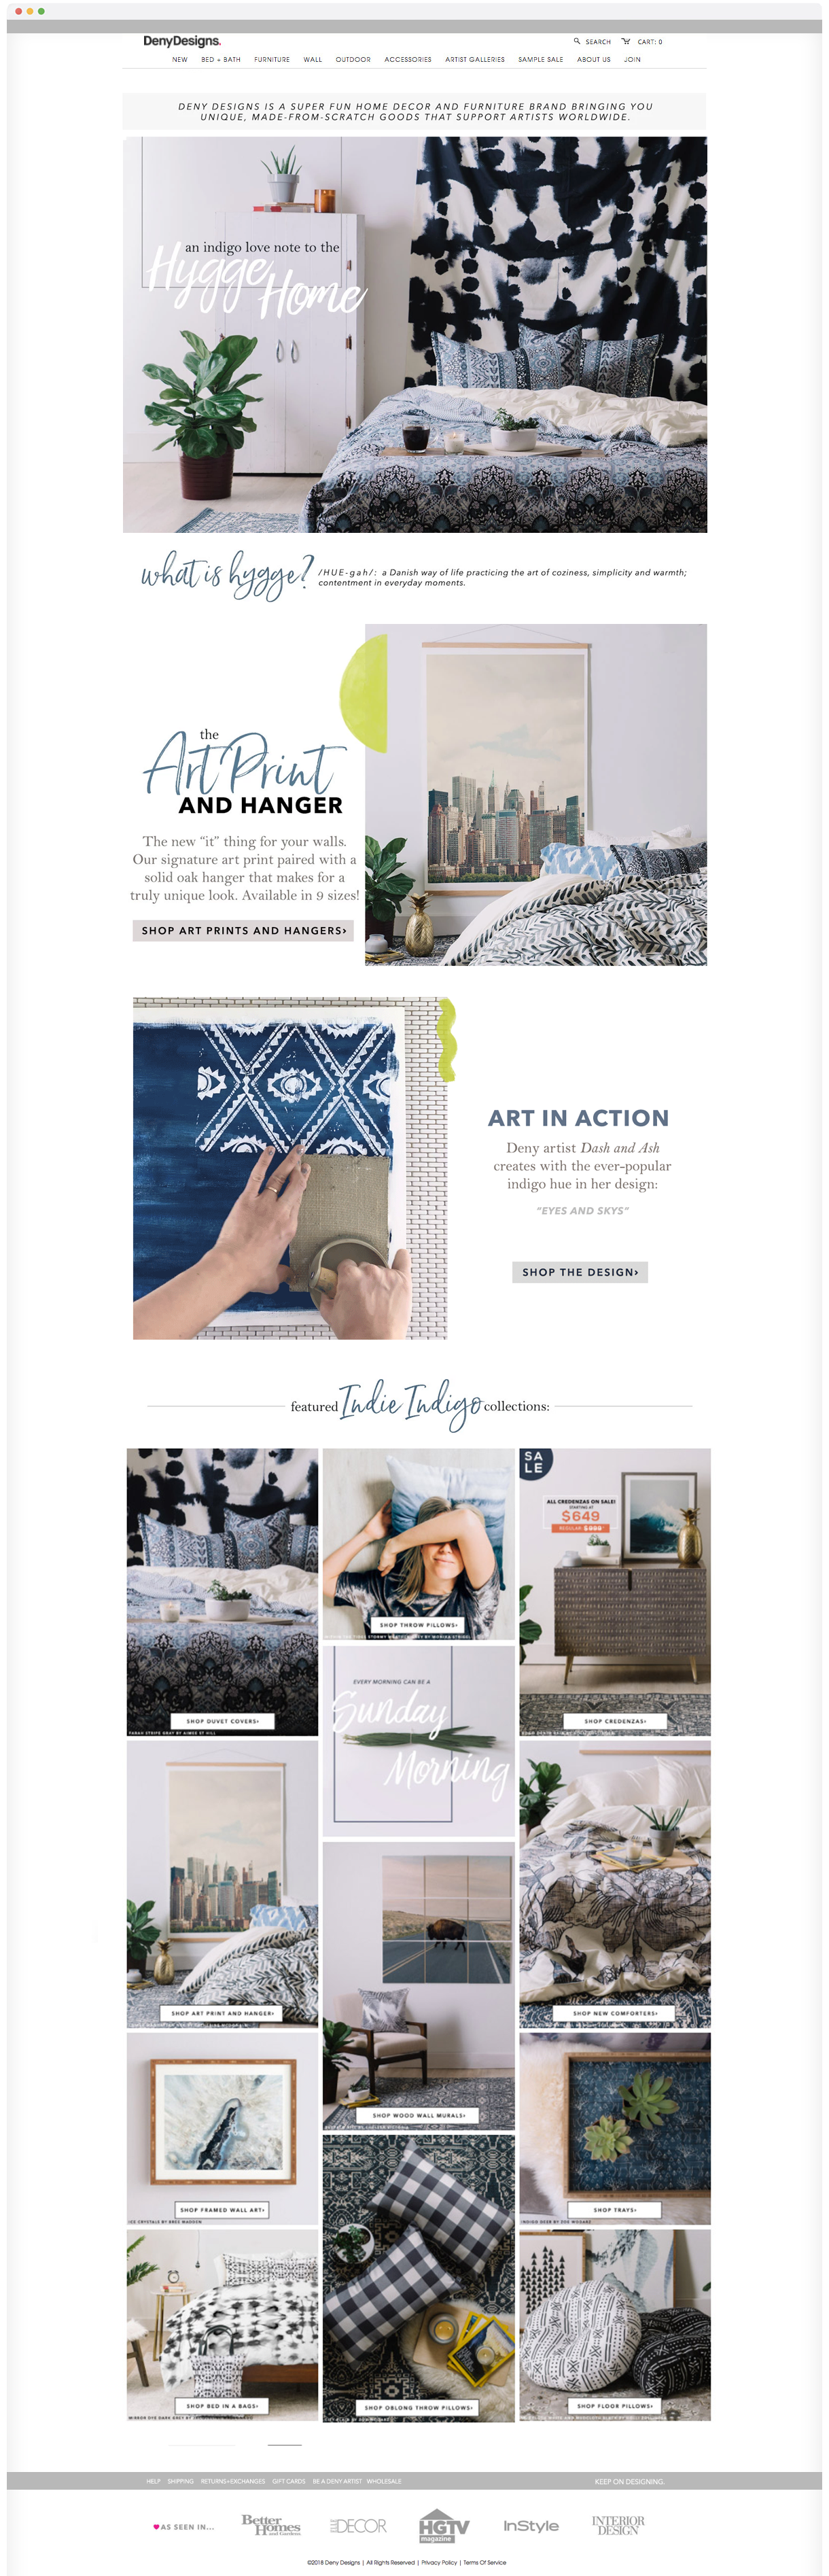 lenay-nicole-portfolio-landing-page-hygge-home.png